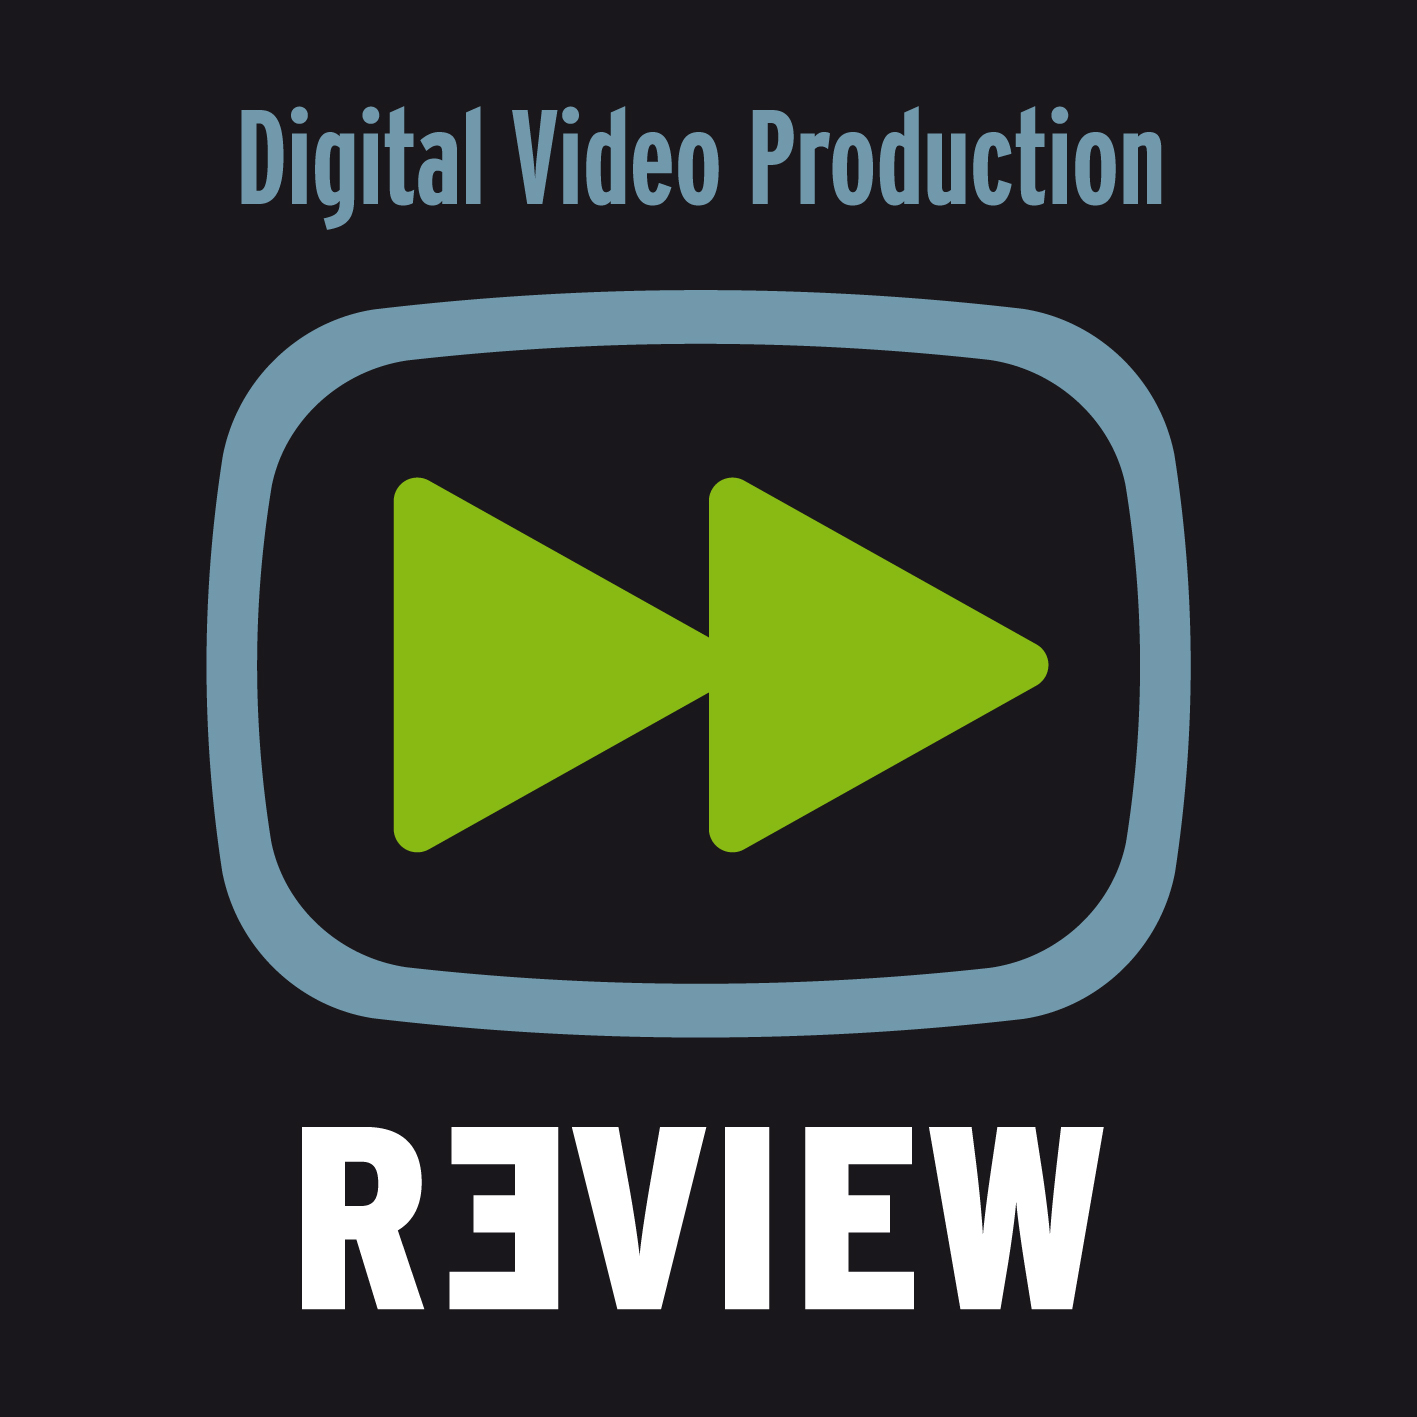 Review Digital Video Productions